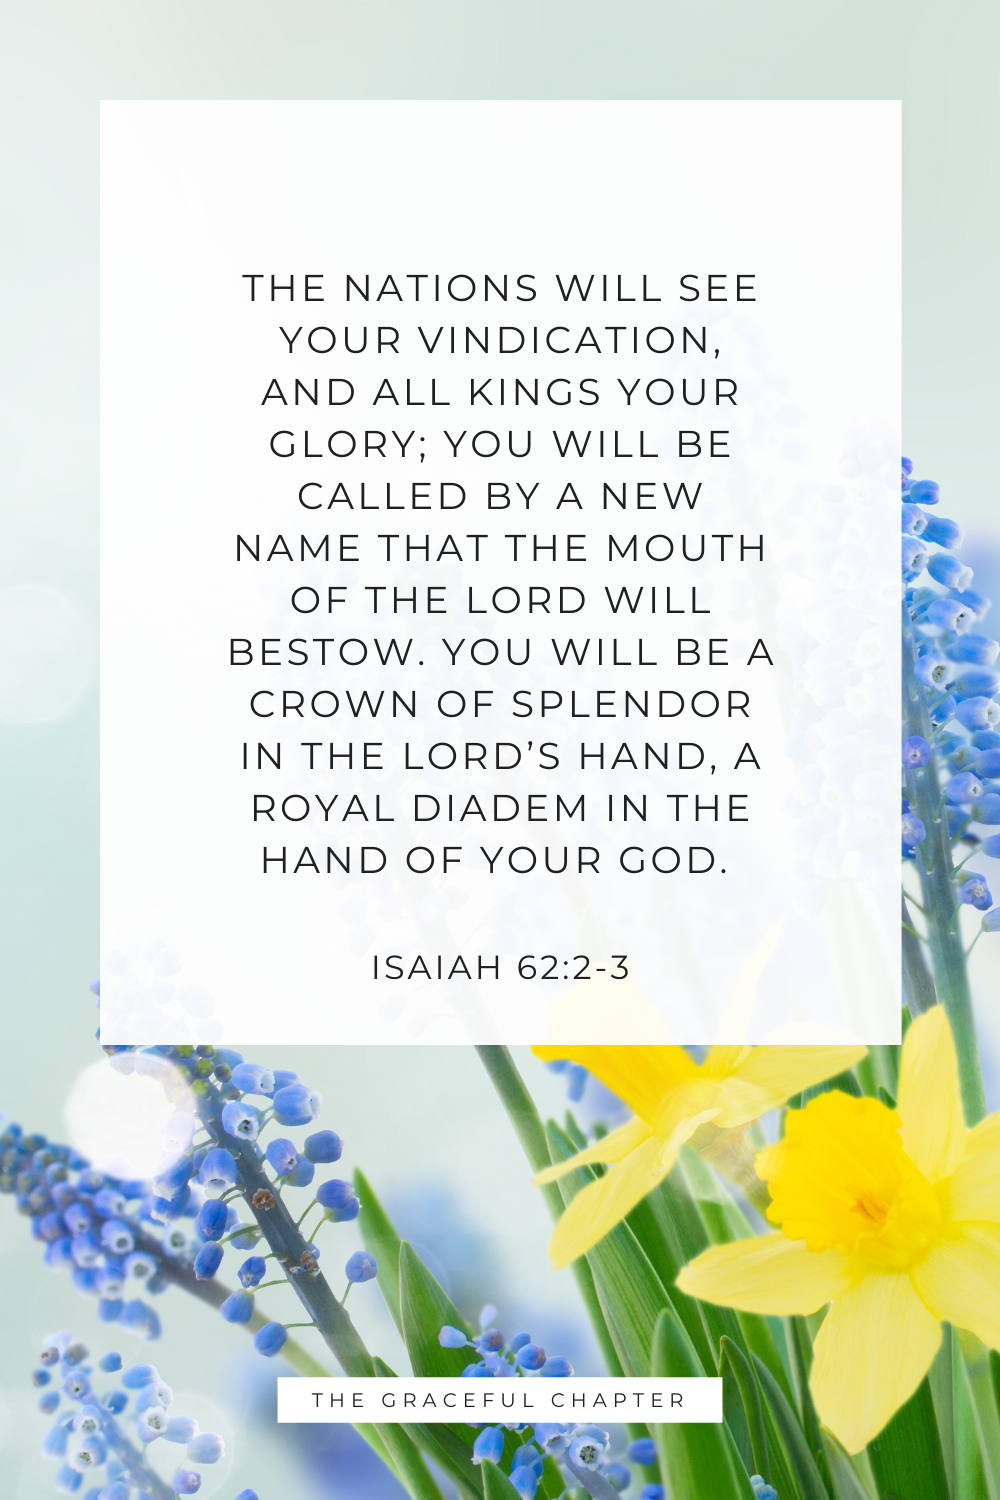 The nations will see your vindication, and all kings your glory; you will be called by a new name that the mouth of the Lord will bestow. You will be a crown of splendor in the Lord's hand, a royal diadem in the hand of your God. Isaiah 62:2-3